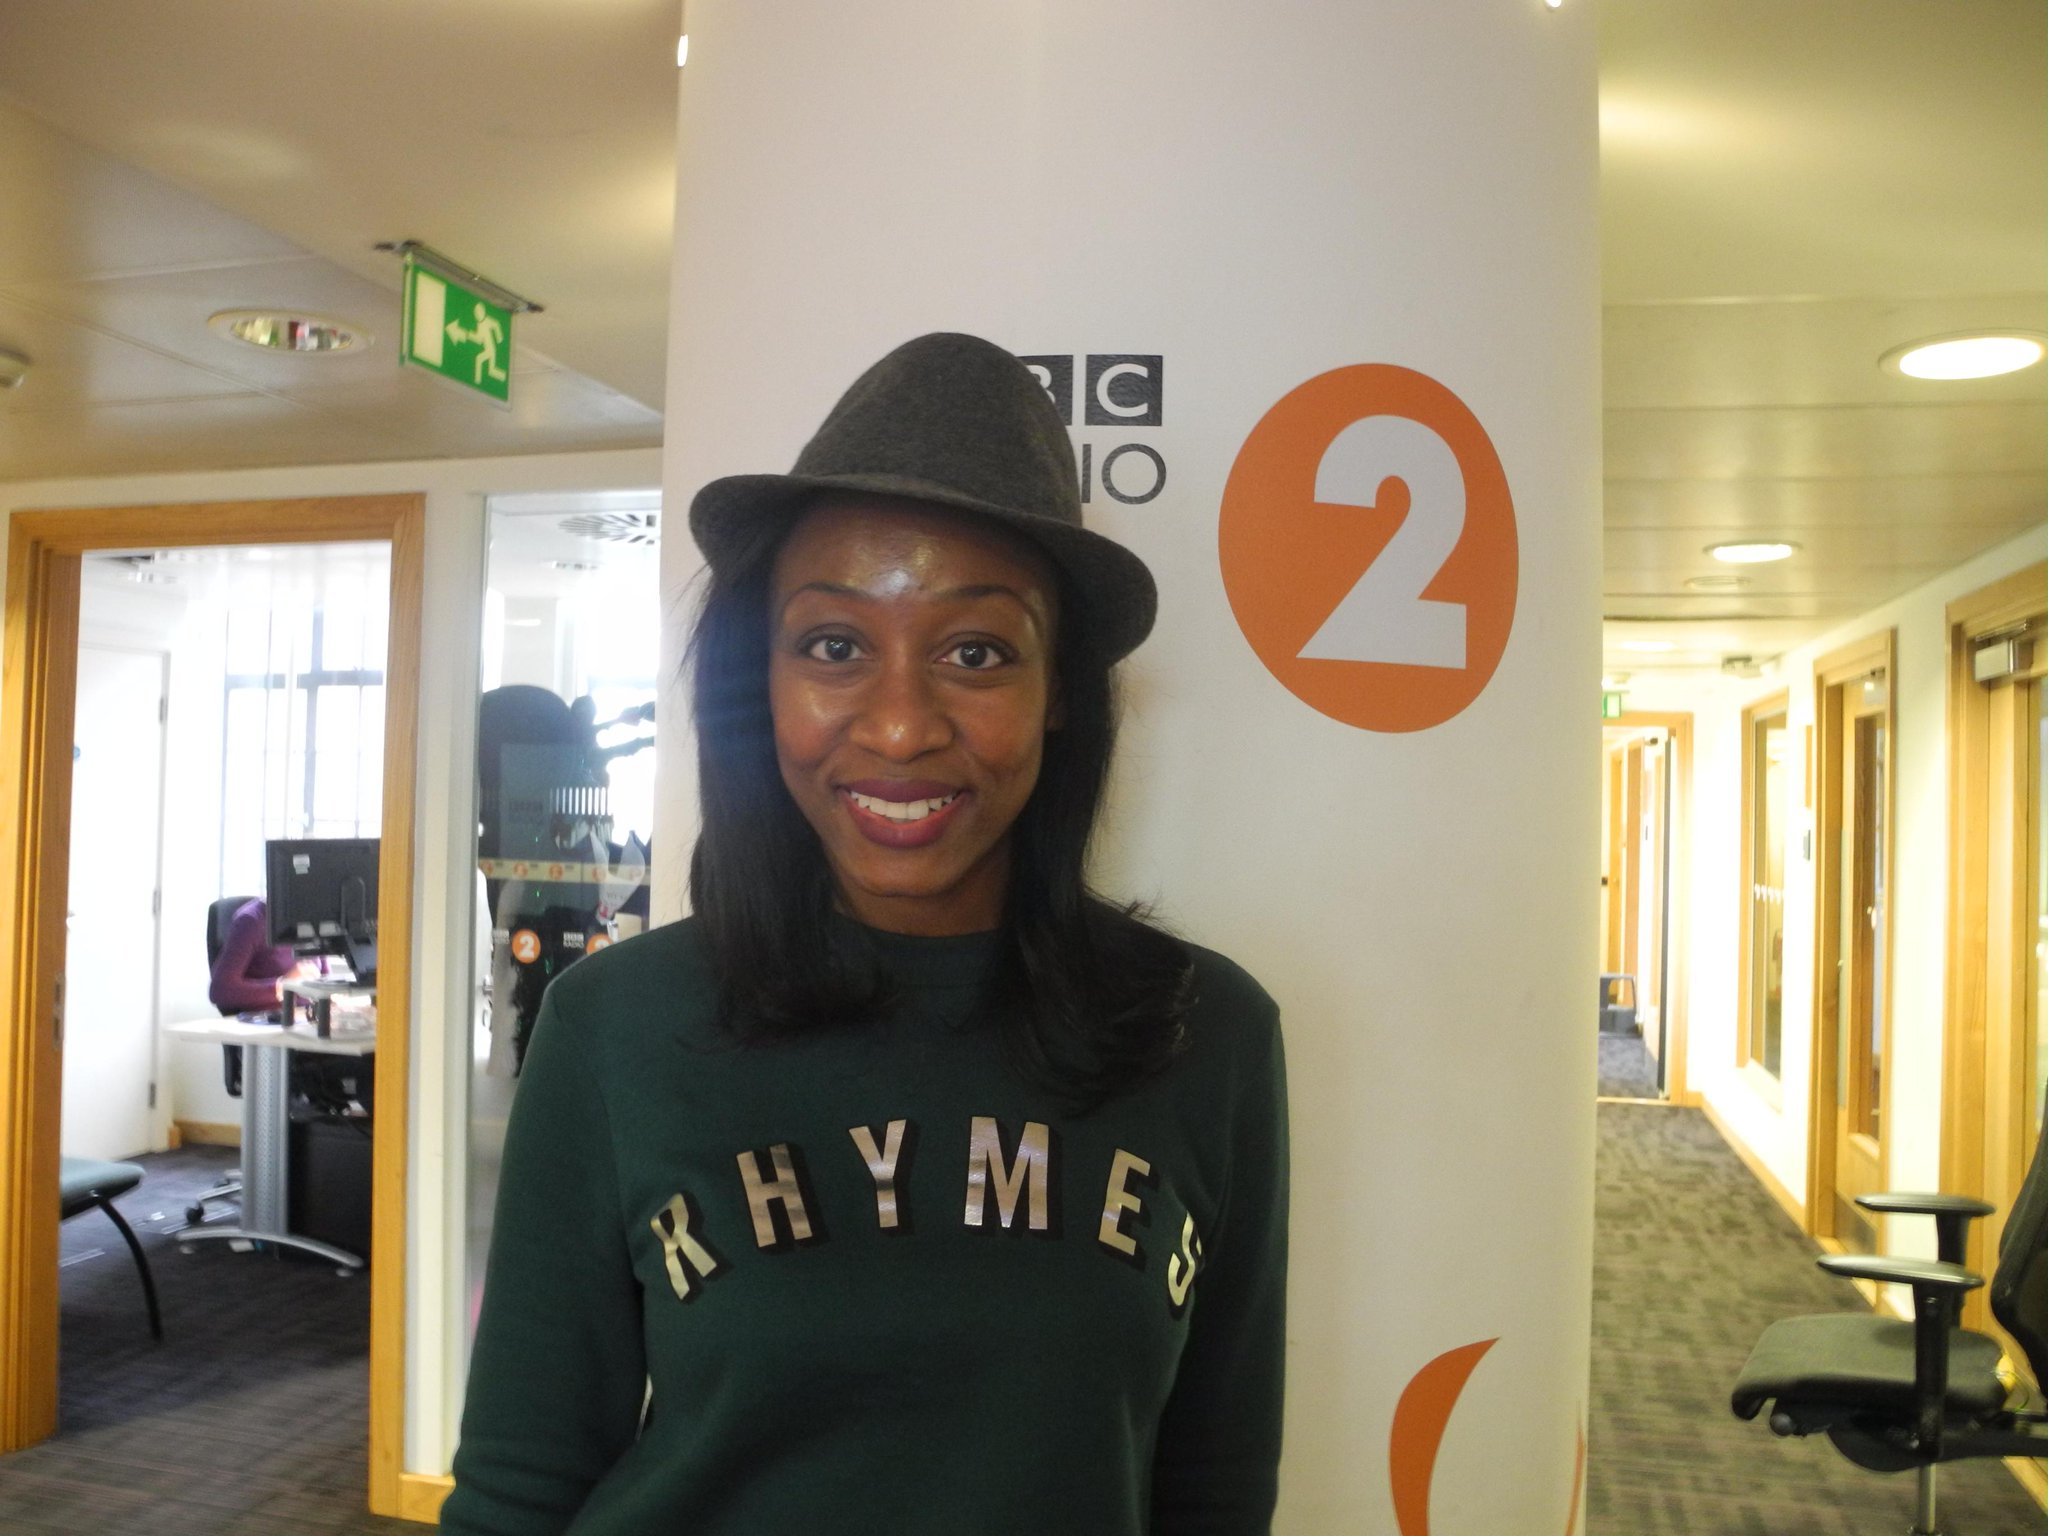 RT @BBCRadio2: Brilliant @Beverleyknight  is here to talk about the cast of @MemphisMusical performing at Proms In The Park http://t.co/FGm…